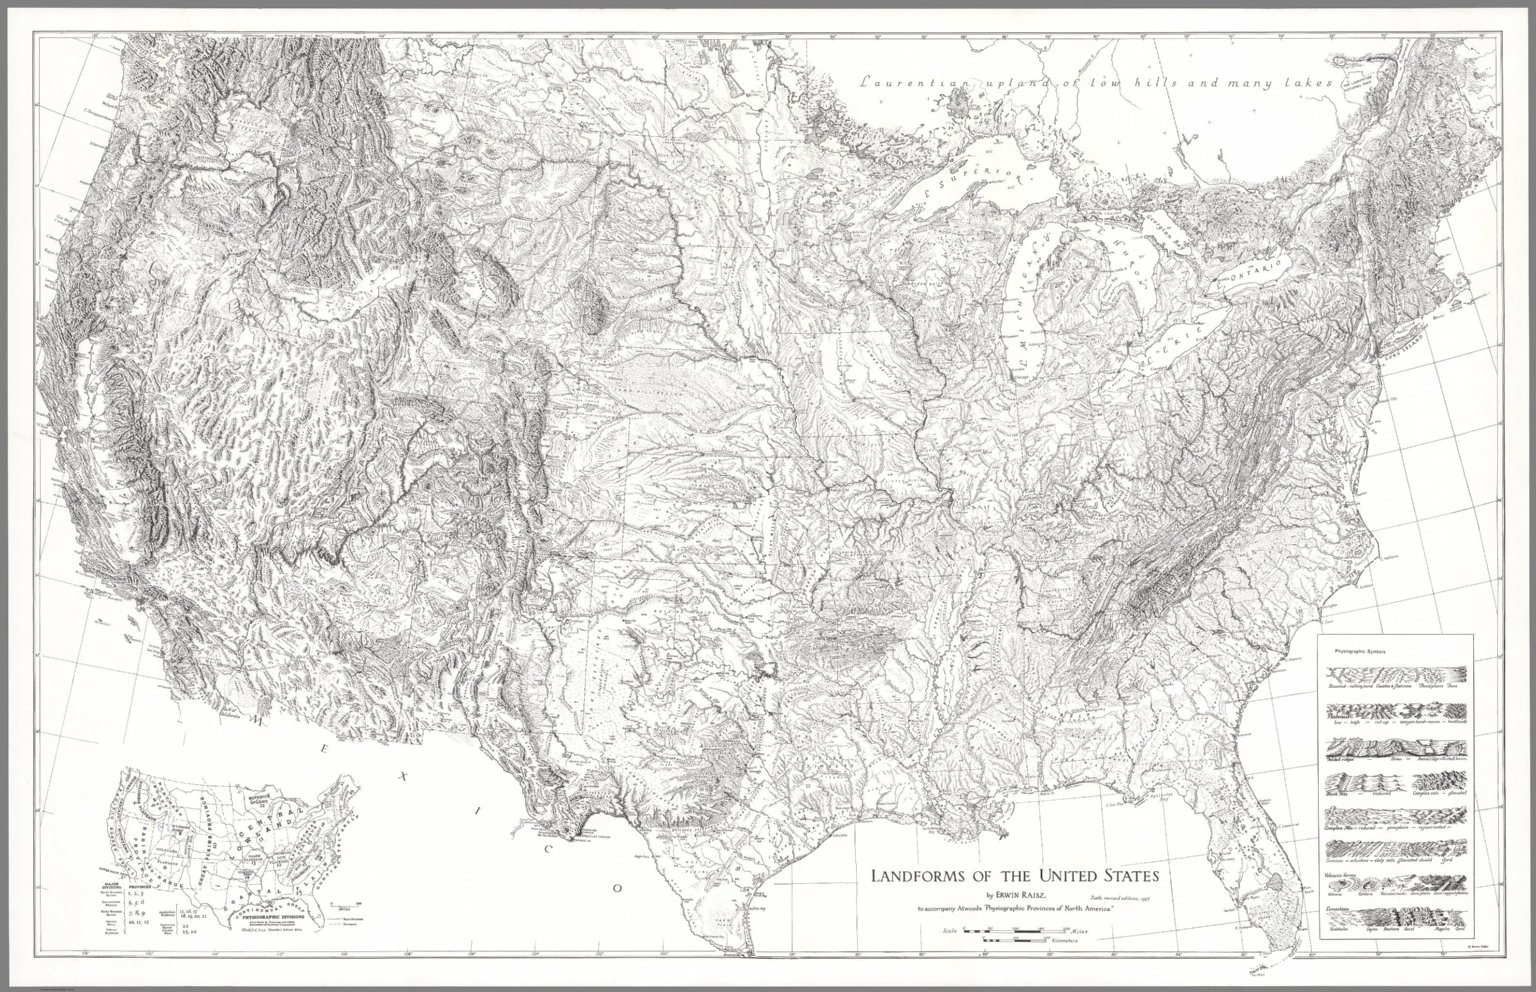 Landforms Of The United States